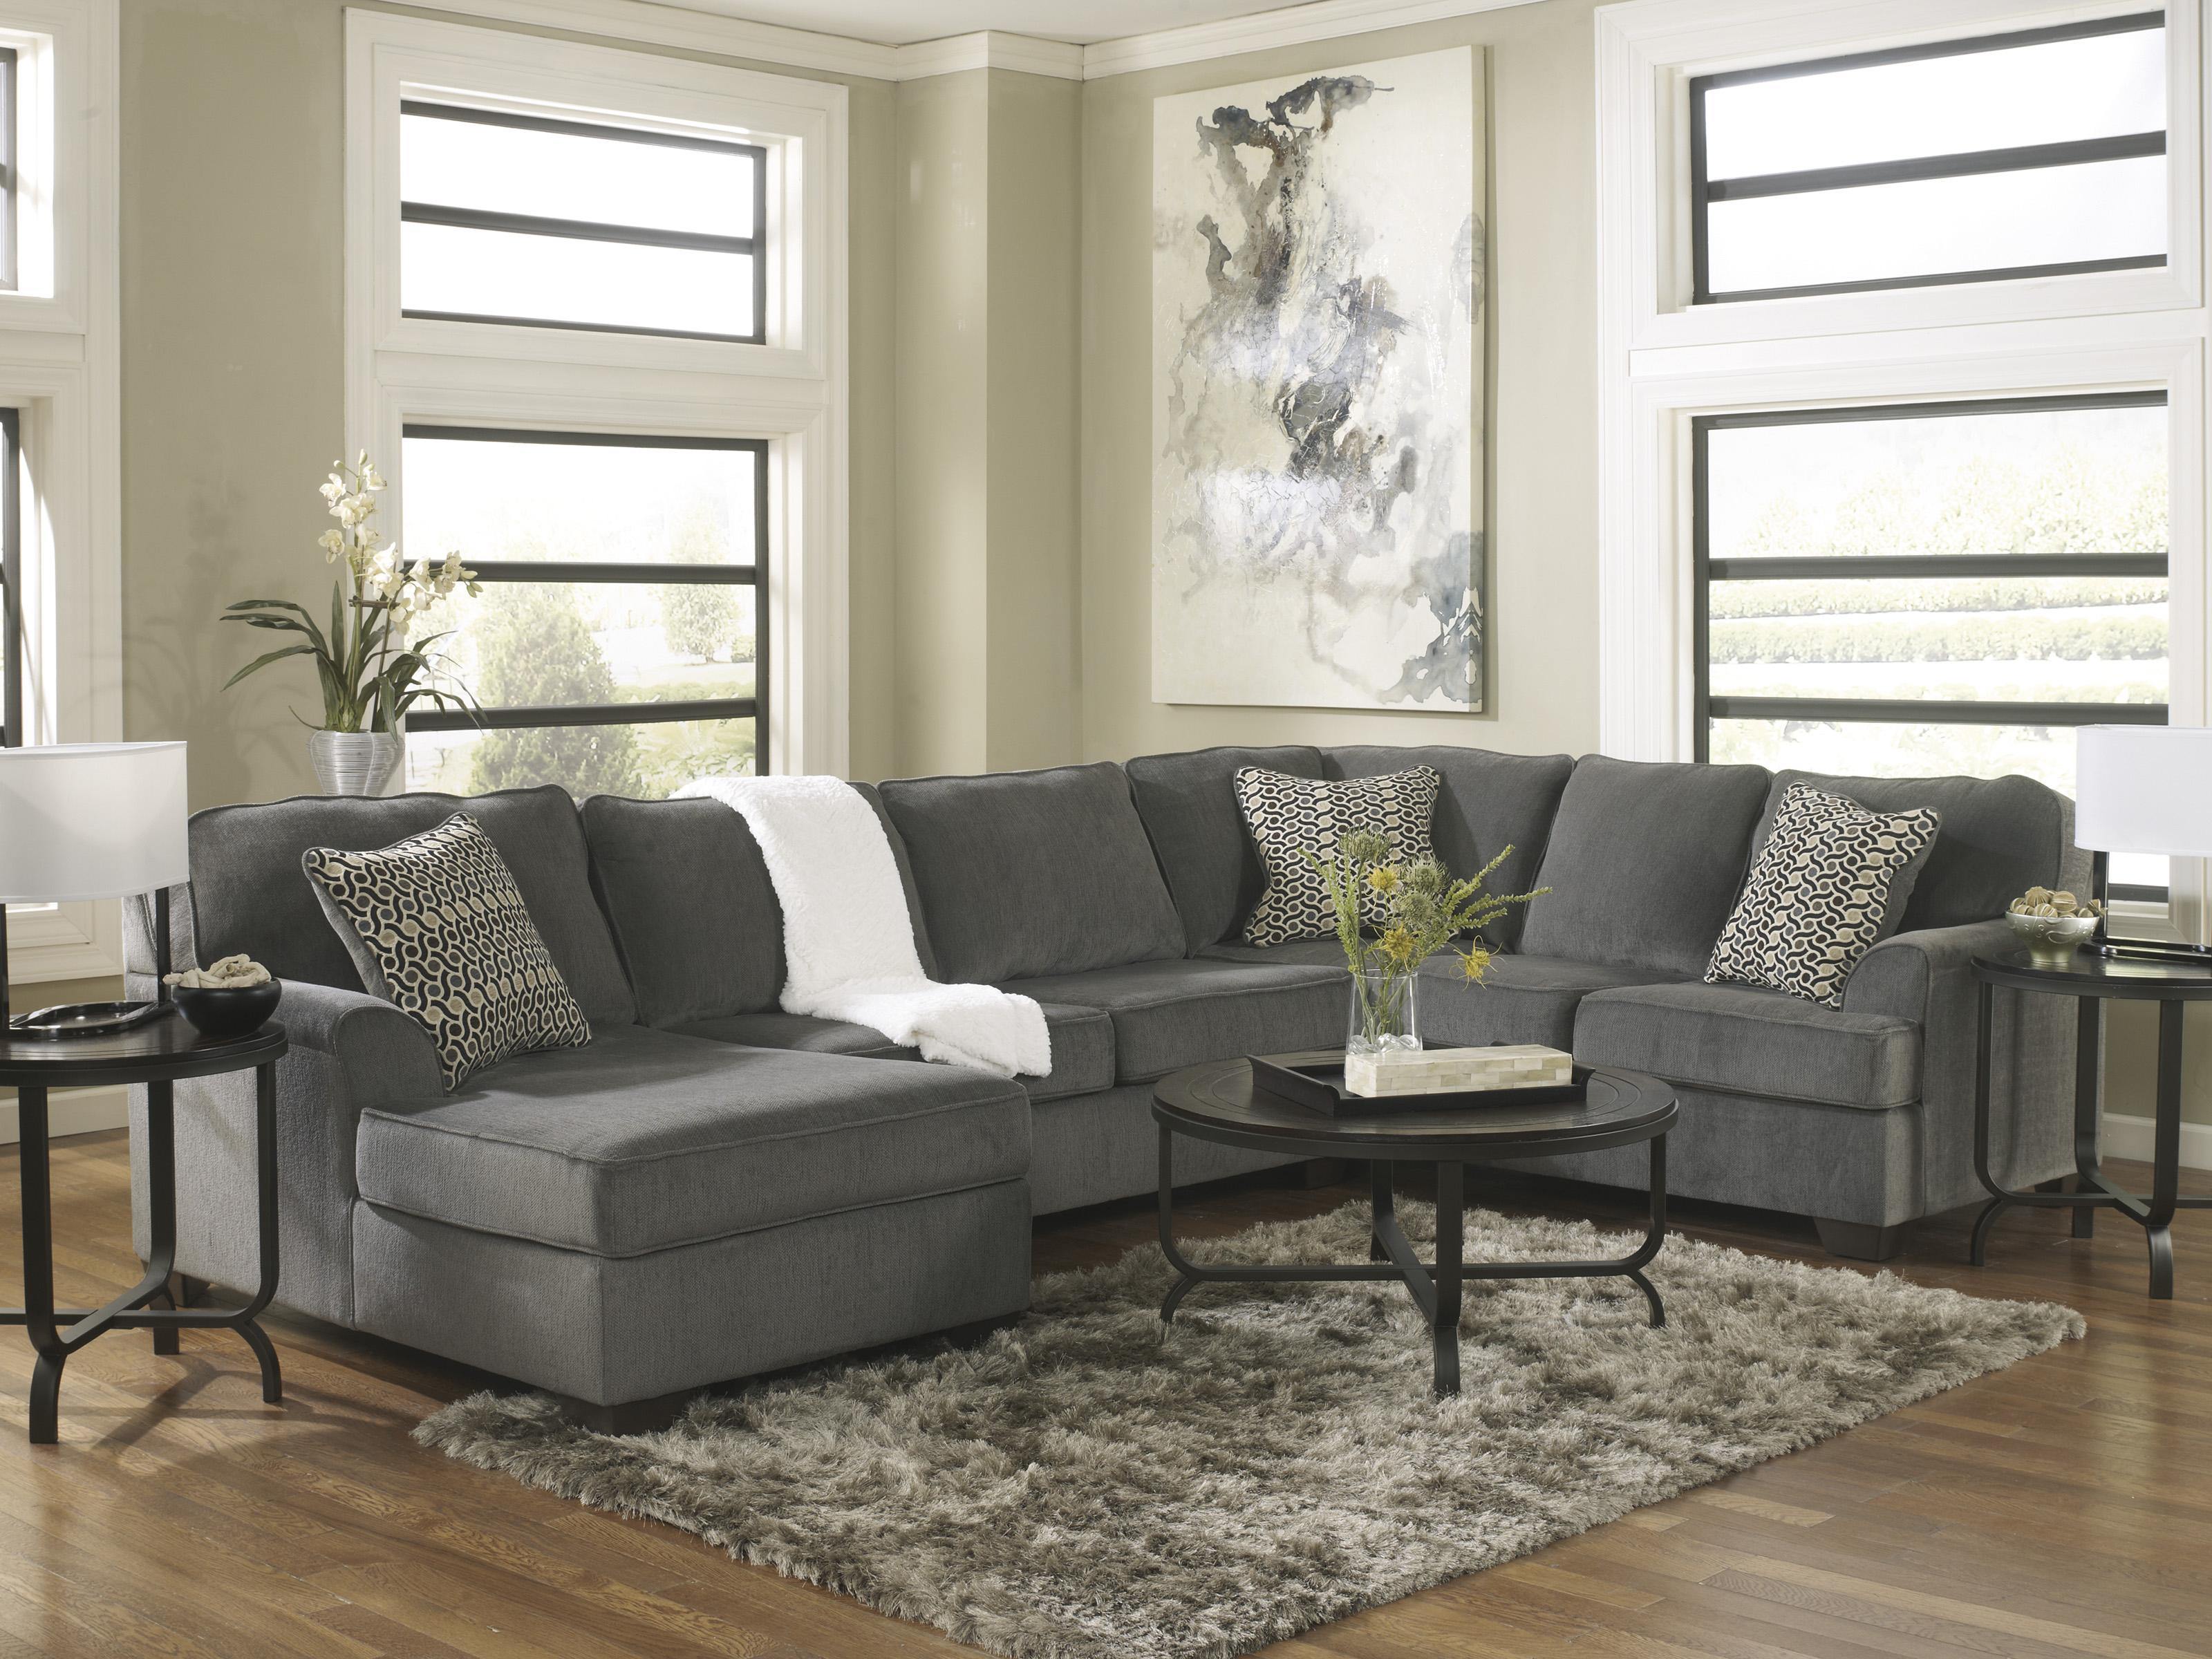 Ashley furniture loric smoke contemporary 3 piece for 3 piece sectional sofa with chaise